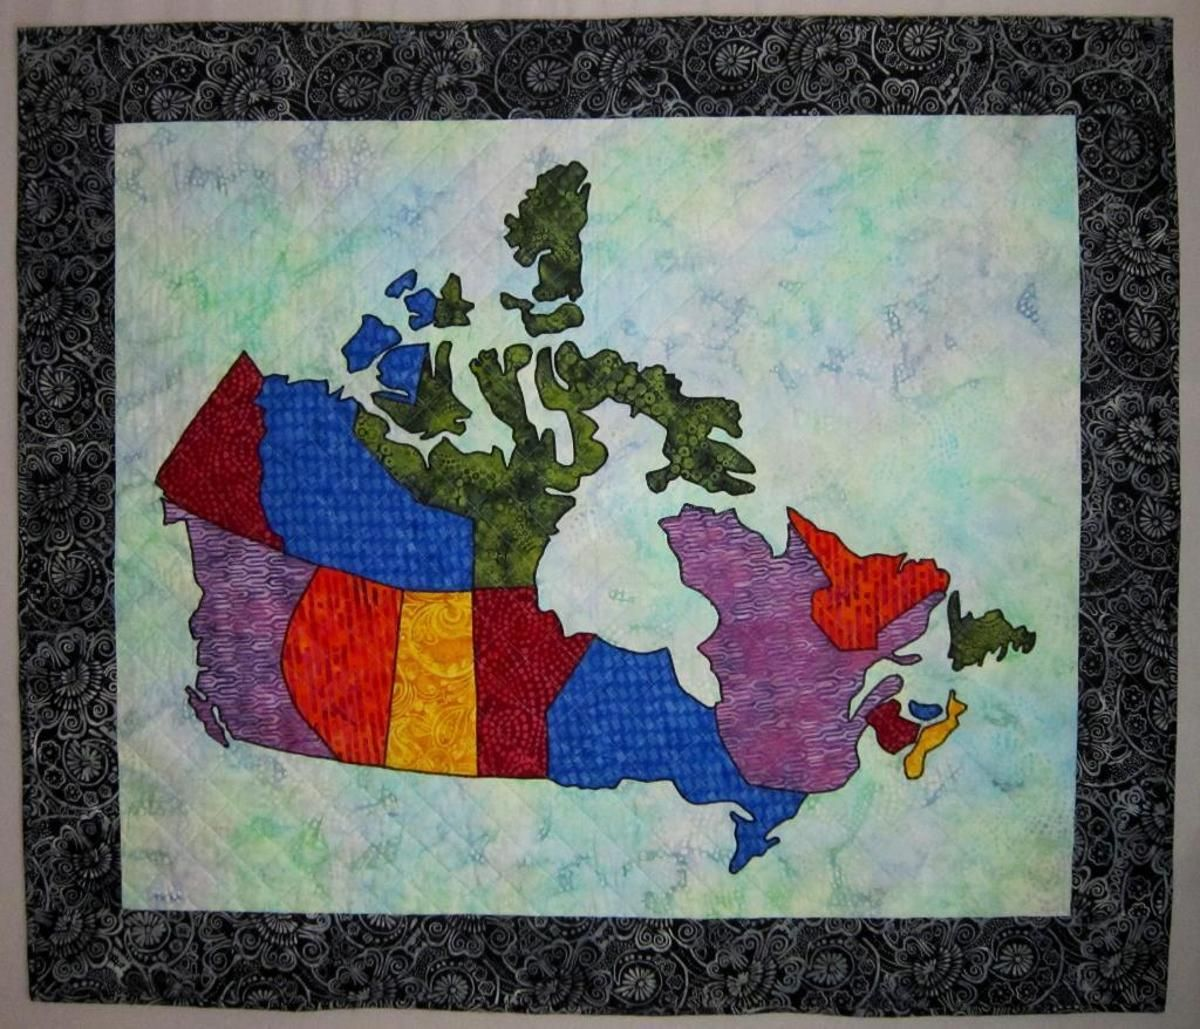 Canada Patchwork Map Quilt | Map quilt and Patchwork : quilting canada - Adamdwight.com